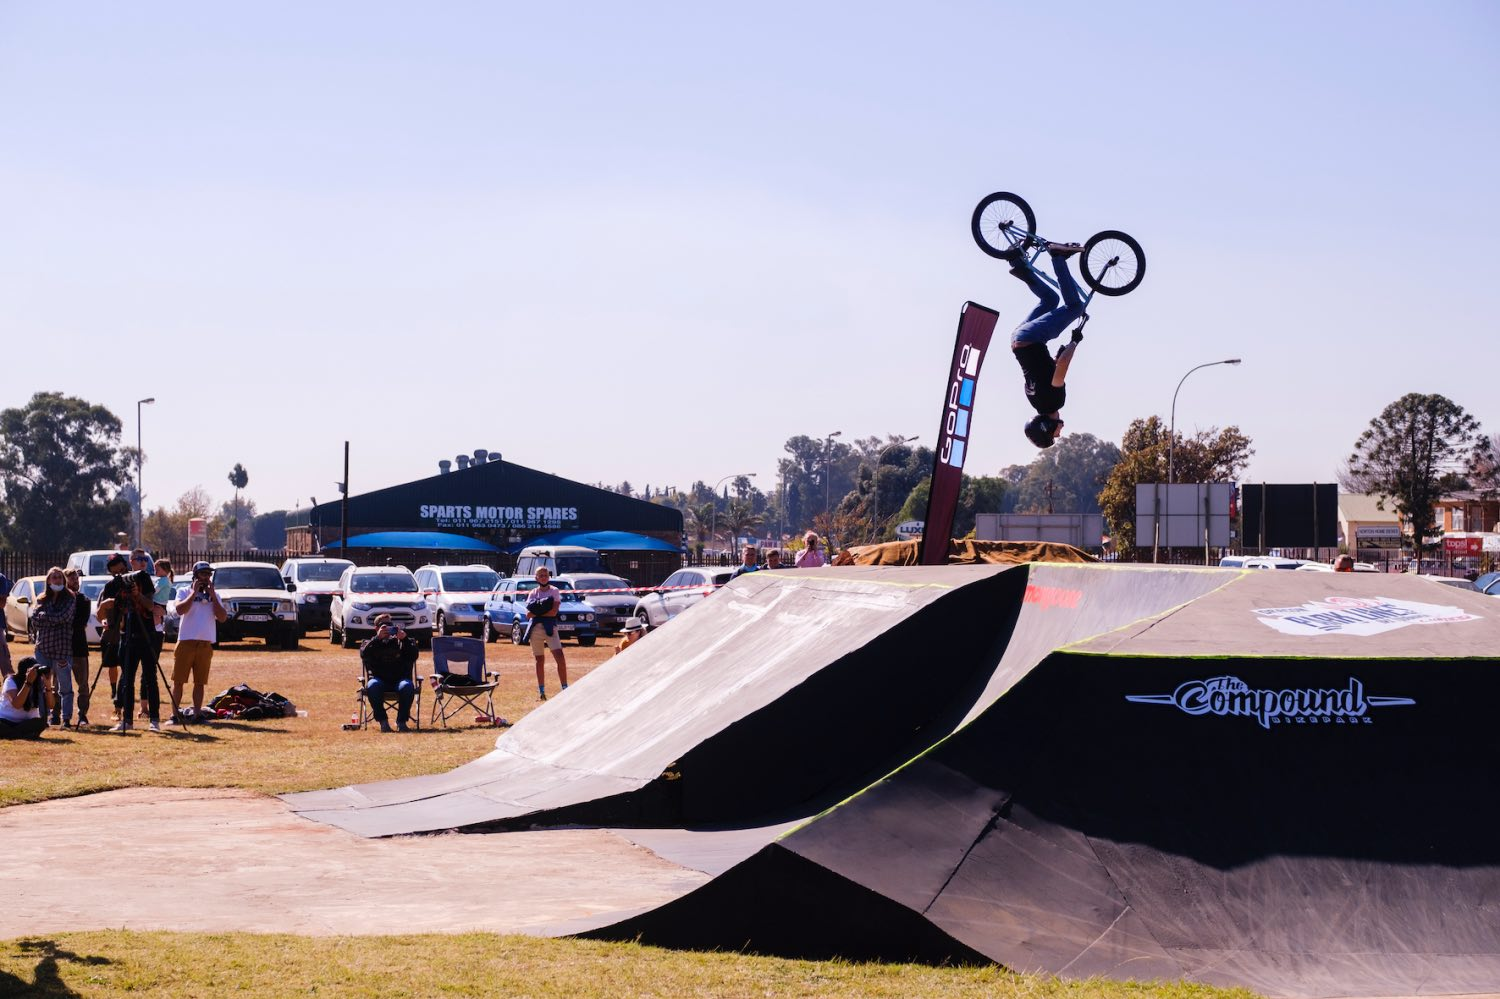 Francois Bodenstein competing at the Park Lines BMX Tournament